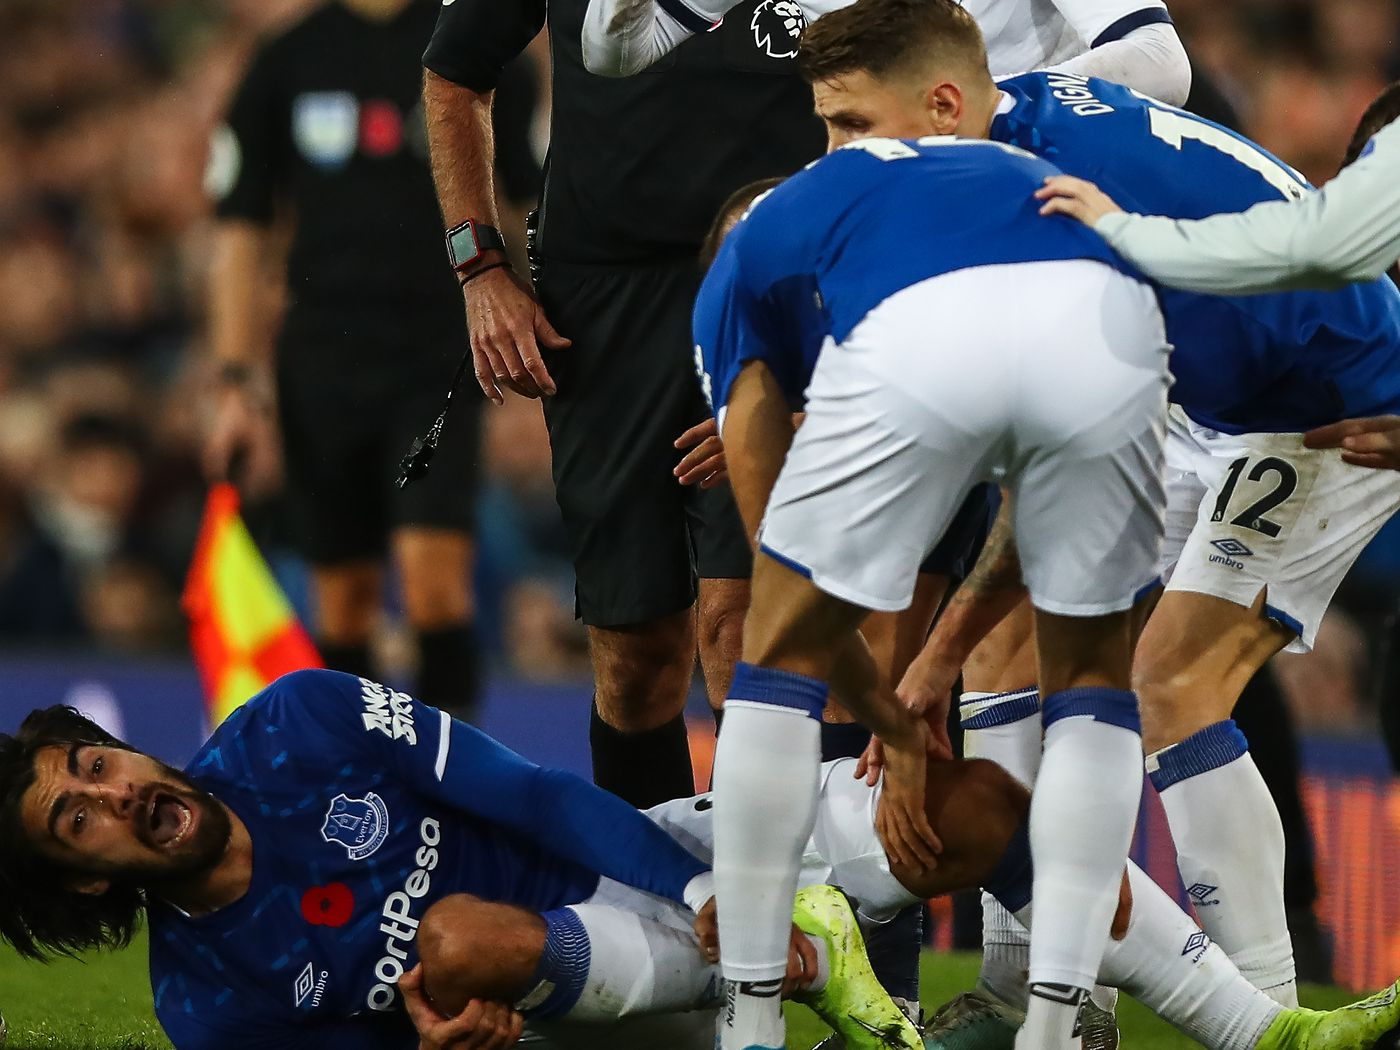 Sympathy Should Lie Solely With André Gomes After Dreadful